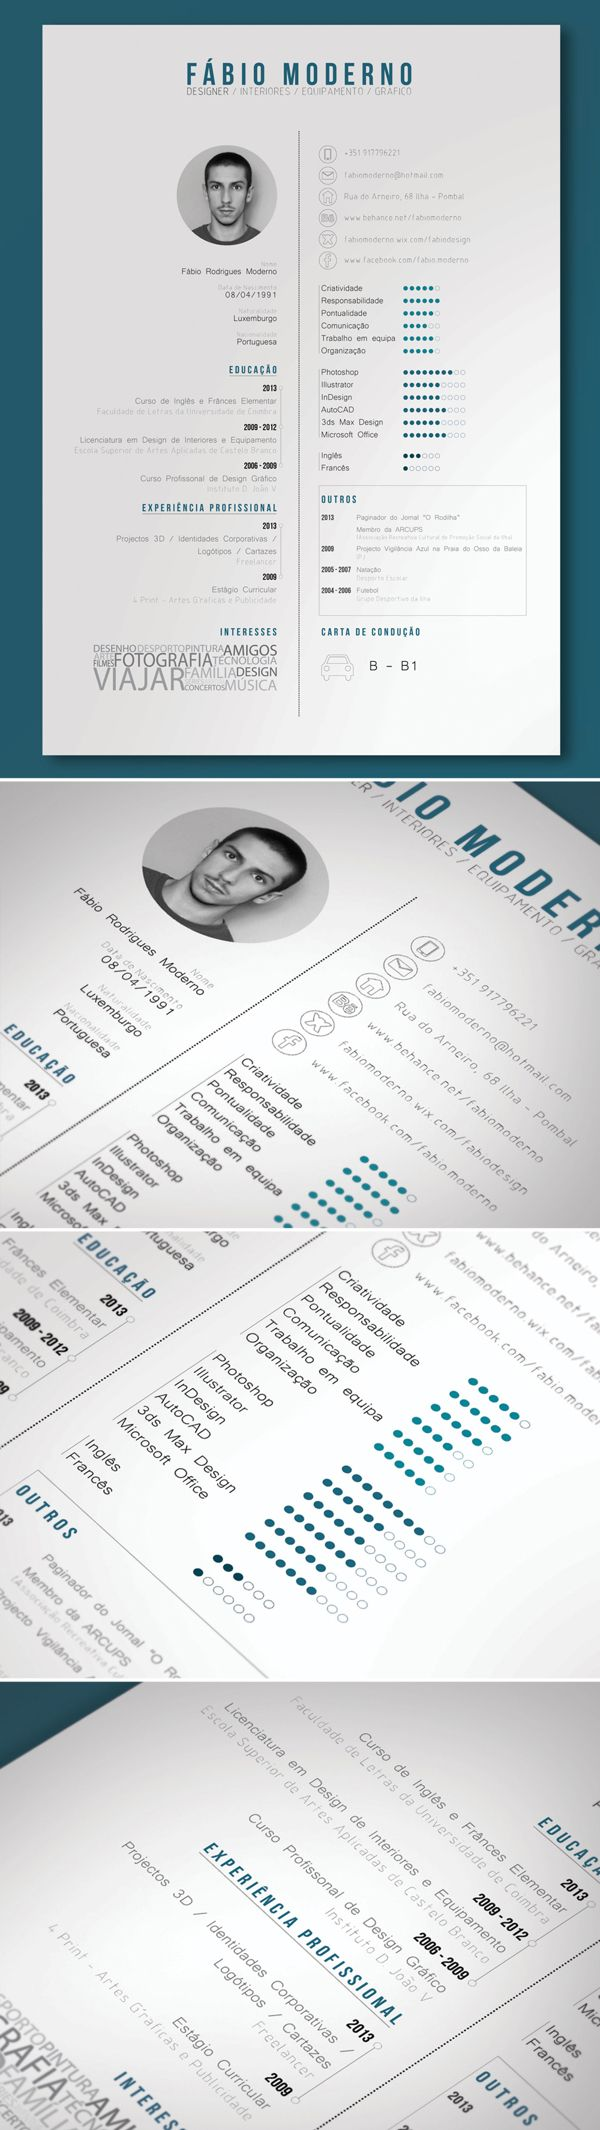 17 best ideas about creative cv design cv design if you are interesting in lighting lighting design and art art gallery design space design and you have your own blog or social media welcome to join us